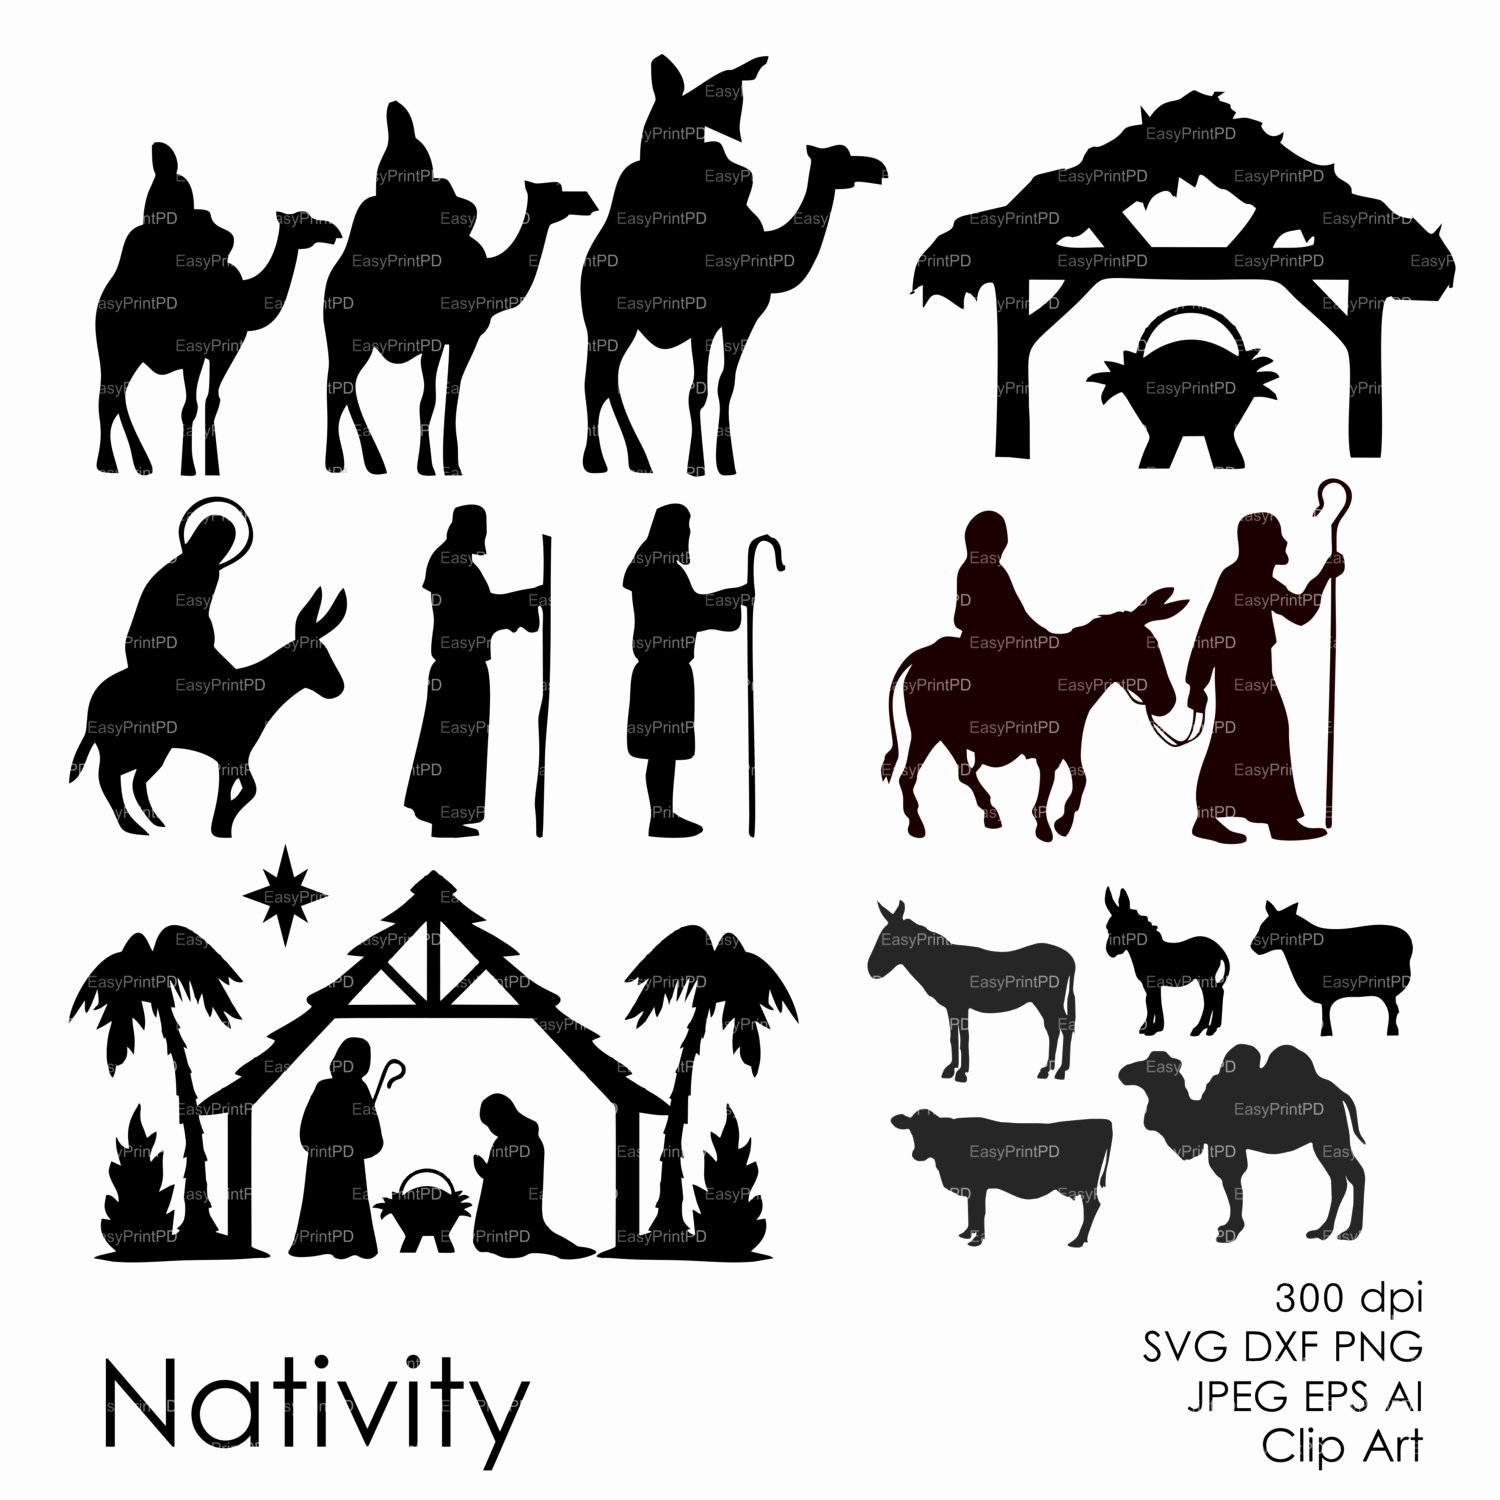 Nativity Scene Silhouette Pattern Free Beautiful Nativity Christ Silhouette Overlays Vector Digital Clipart